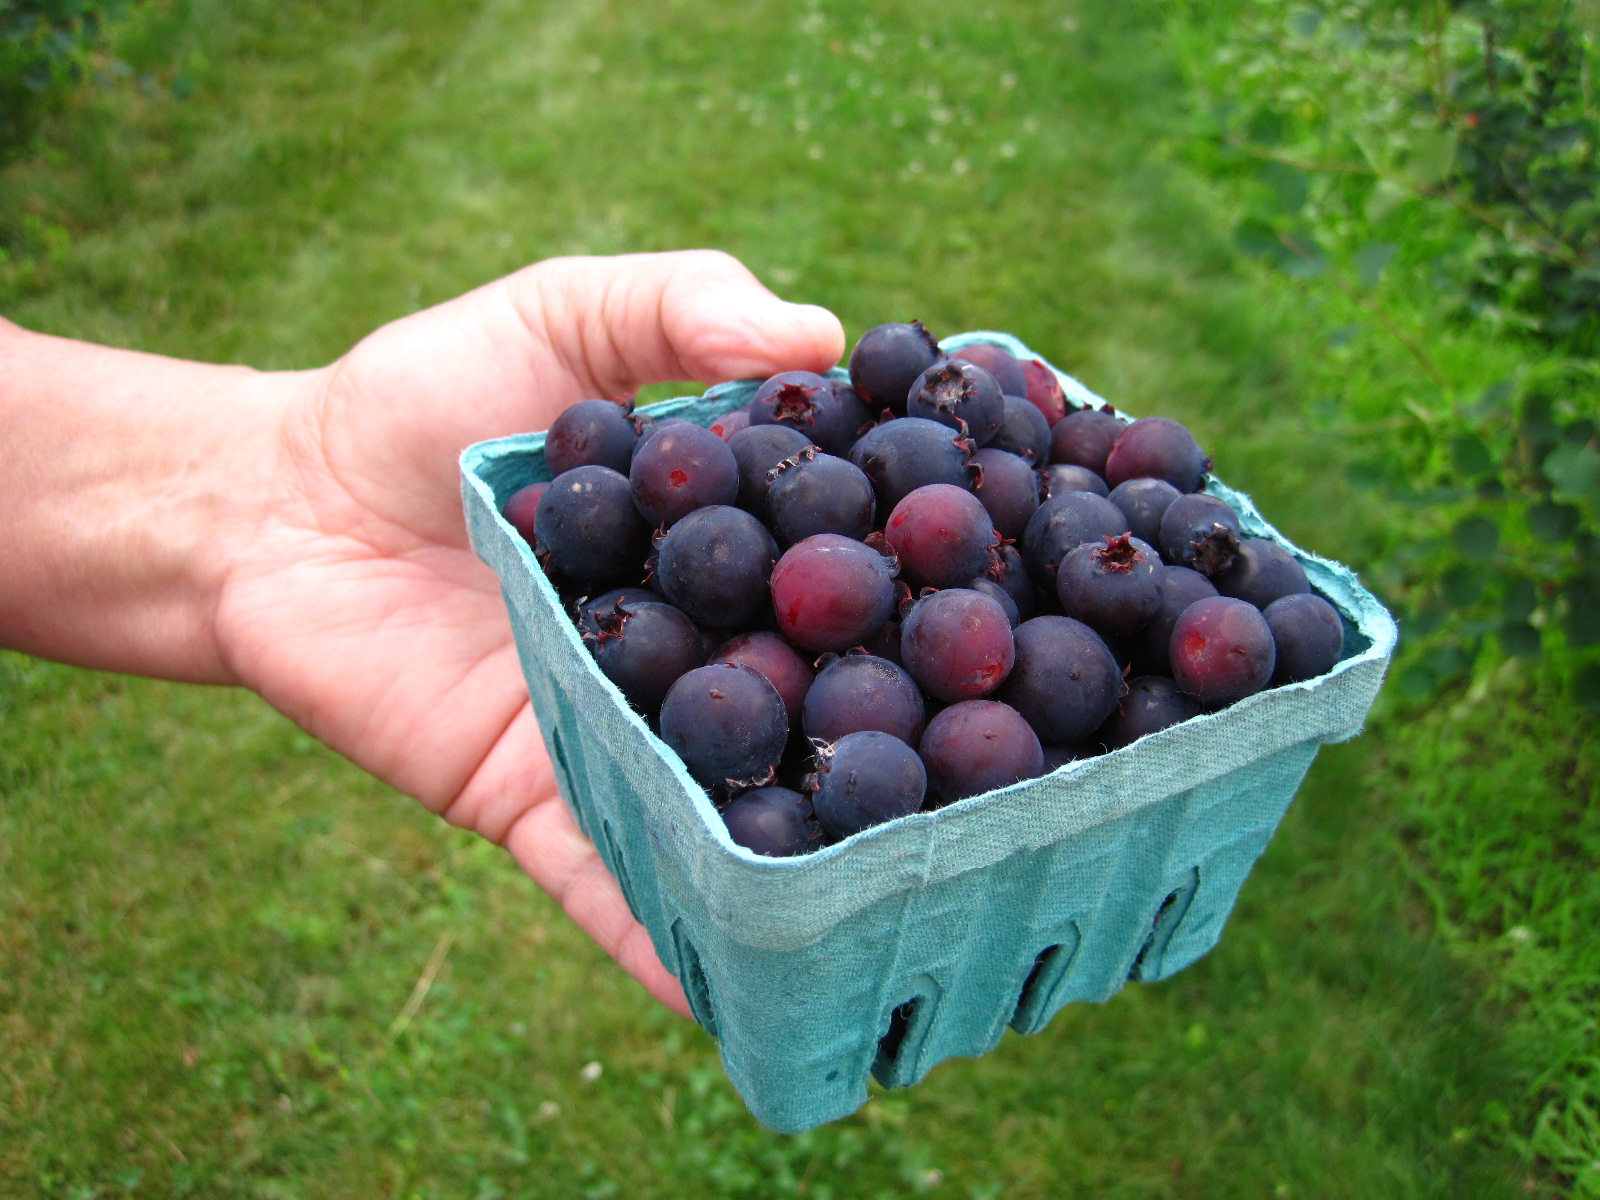 A fruit picker holds a quart basket of Saskatoon berries at G&S Orchards in Walworth, N.Y. on June 26, 2013 .